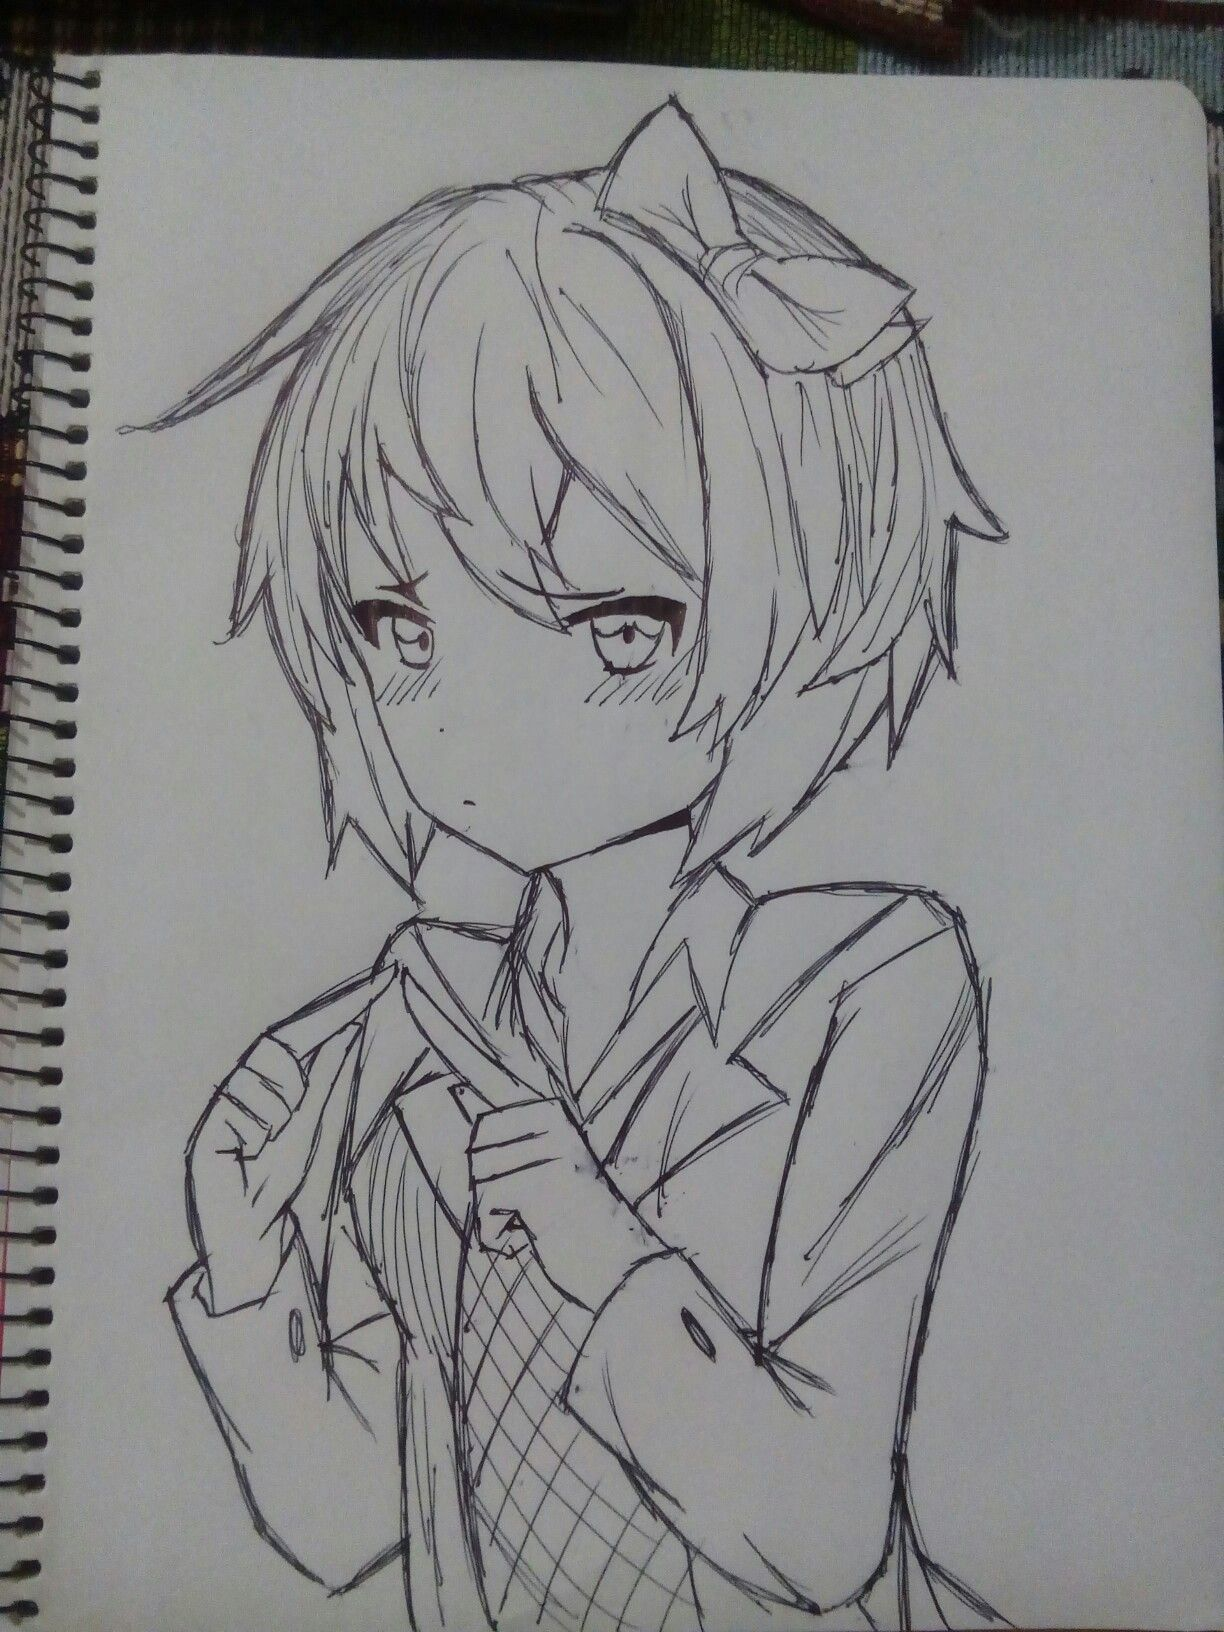 Ddlc Game Images Sayori Old 5 By Dam24 Literature Club Drawings Art Sketches